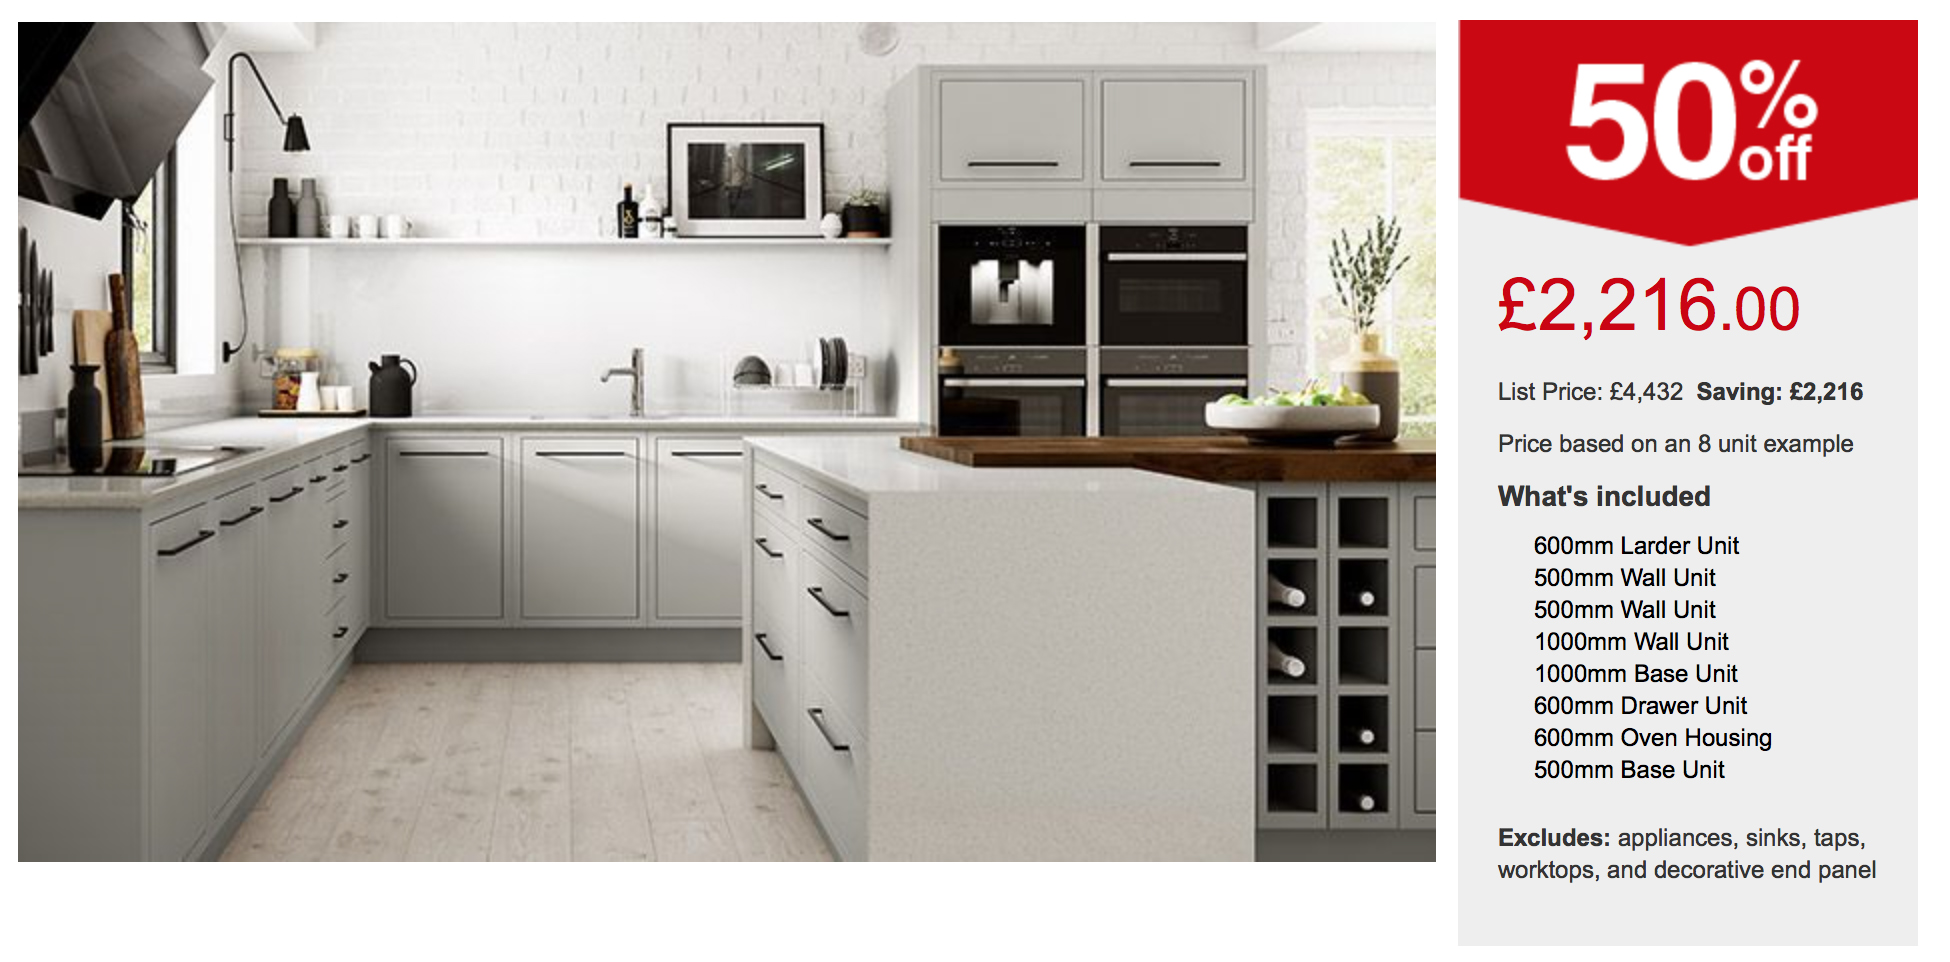 Wickes has launched four new kitchen ranges - Kitchens Kitchens KBB ...